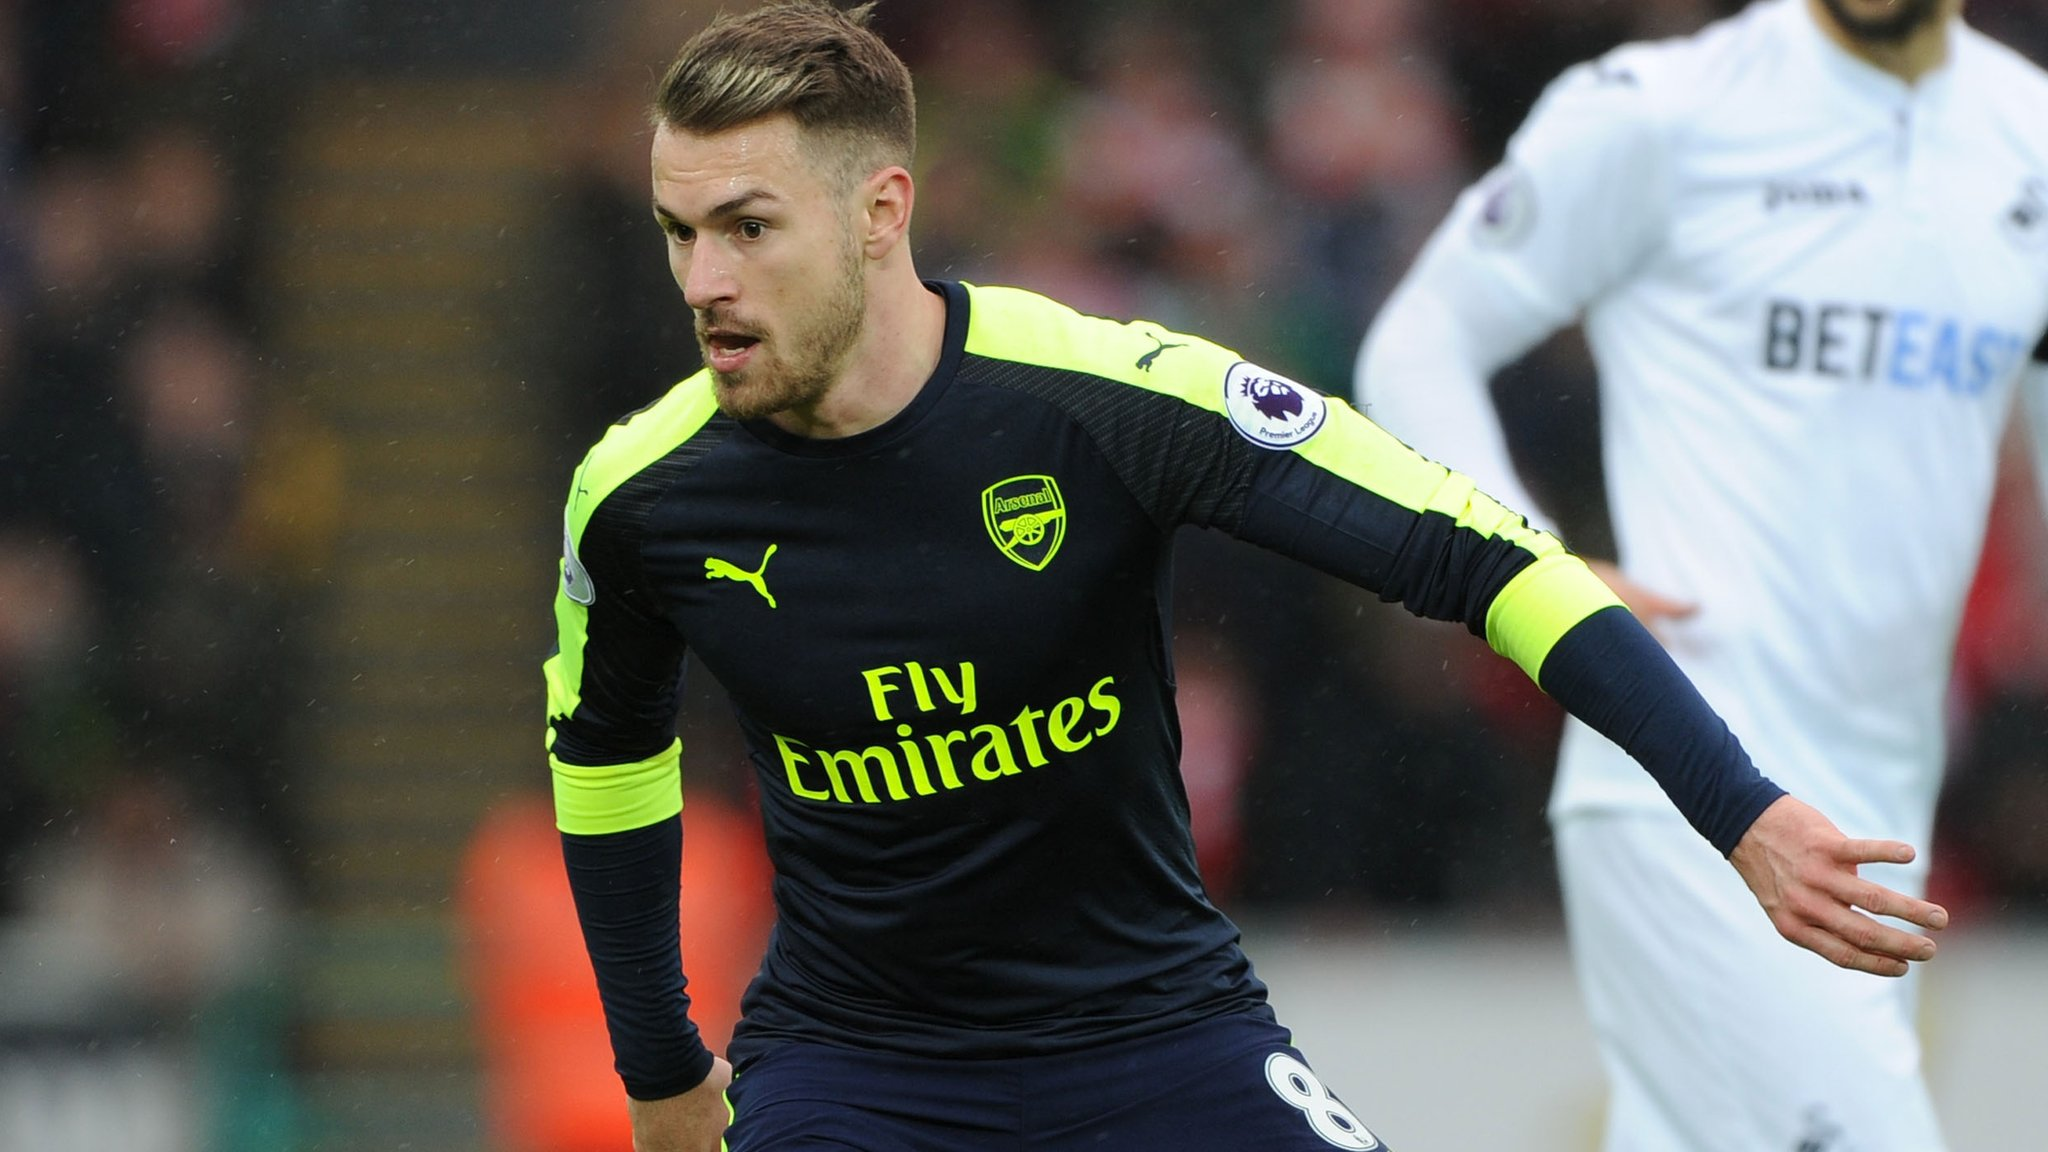 Aaron Ramsey: Chris Gunter defends teammate from Arsenal fan criticism